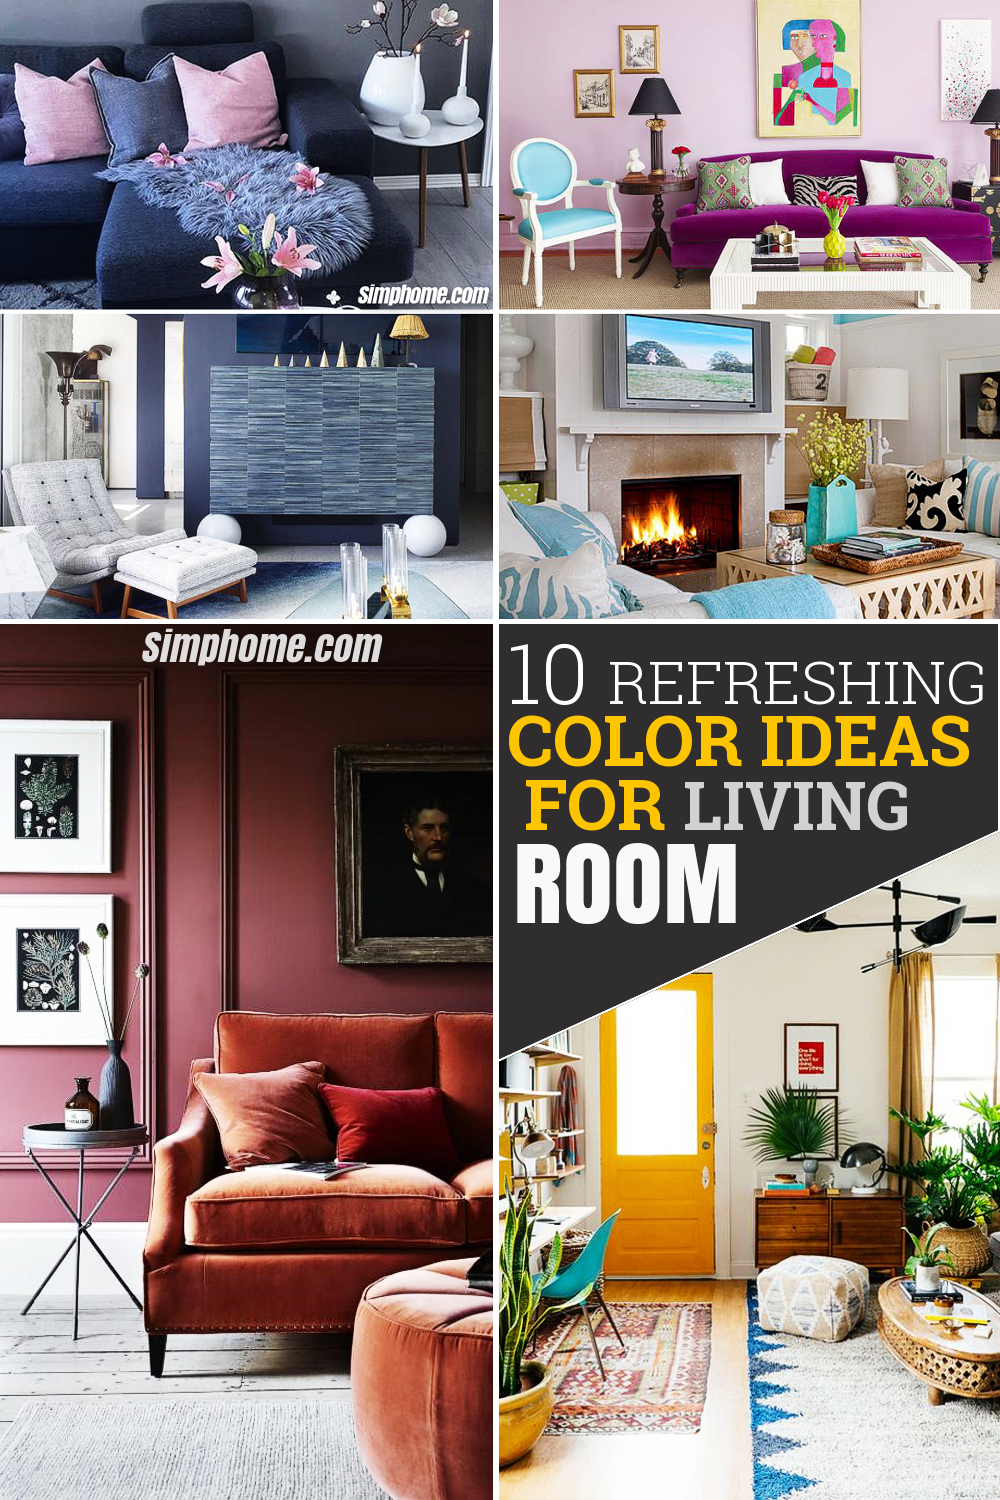 10 Refreshing Color Ideas for Living Room via Simphome Featured Pinterest